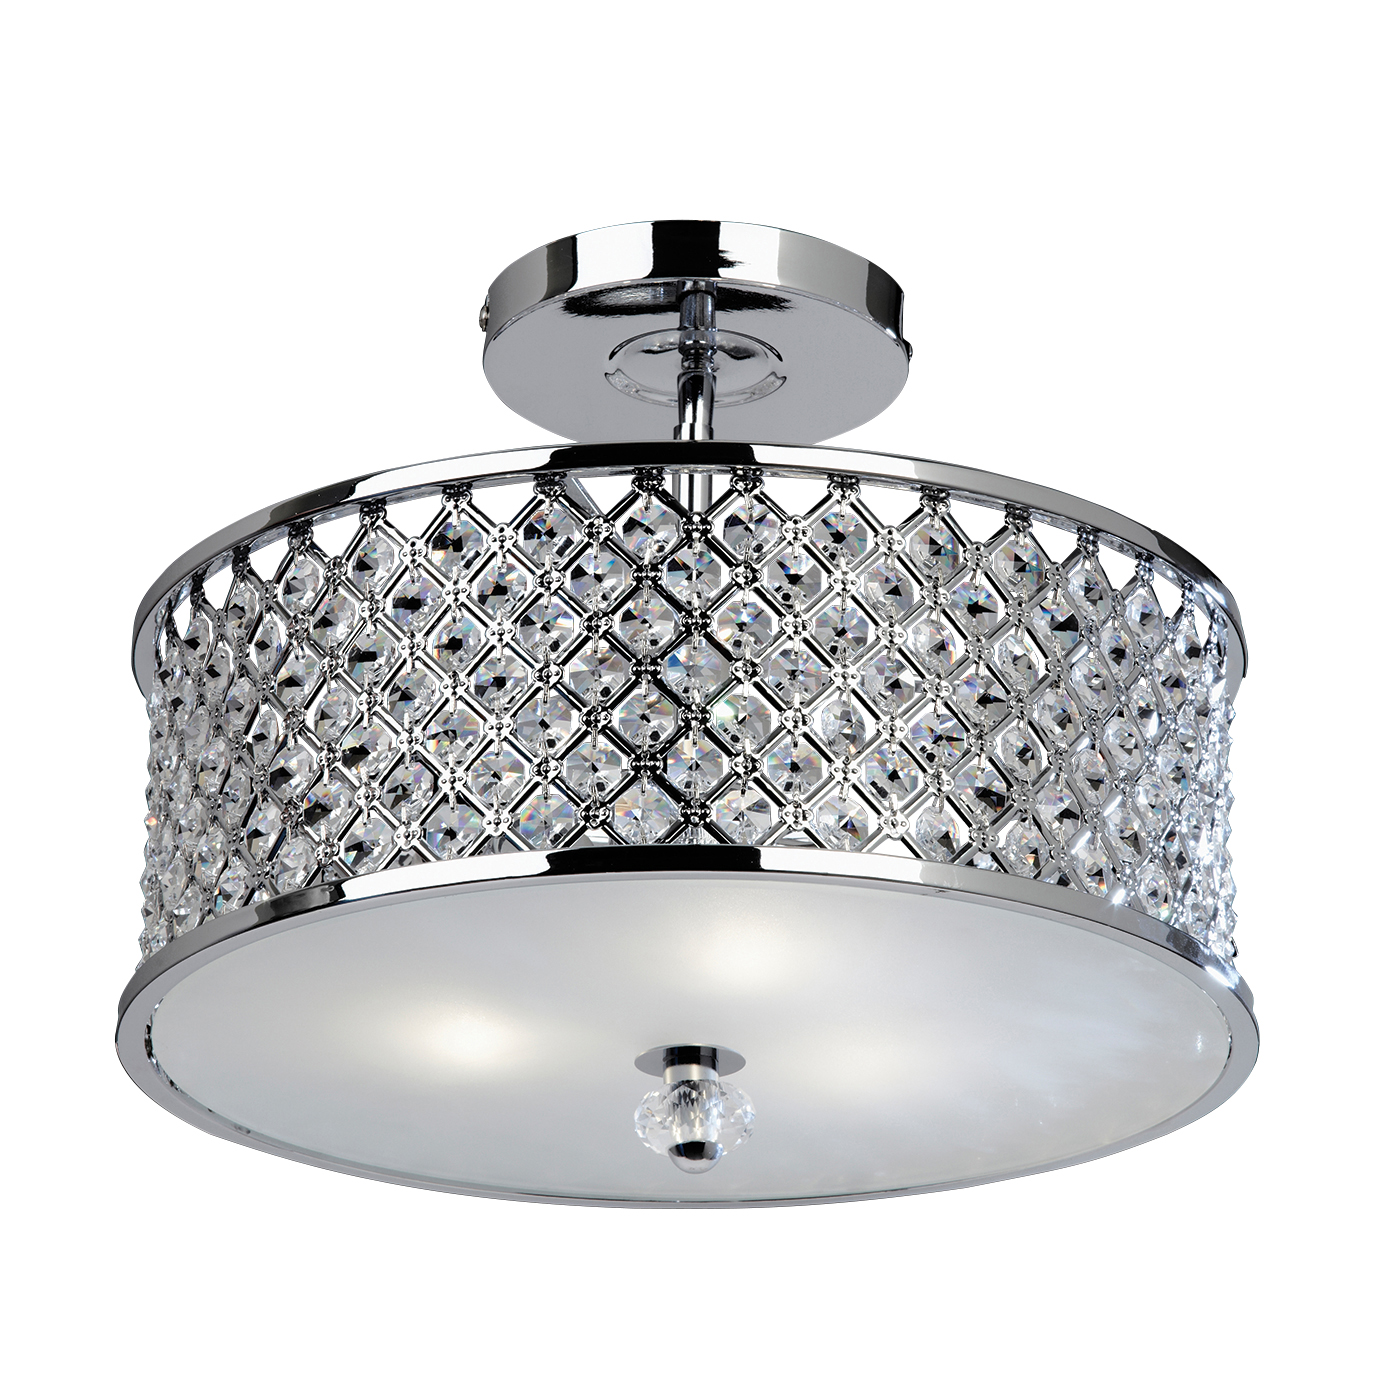 Endon Hudson flush ceiling light 3x 60W Chrome effect & clear crystal (k9) drops